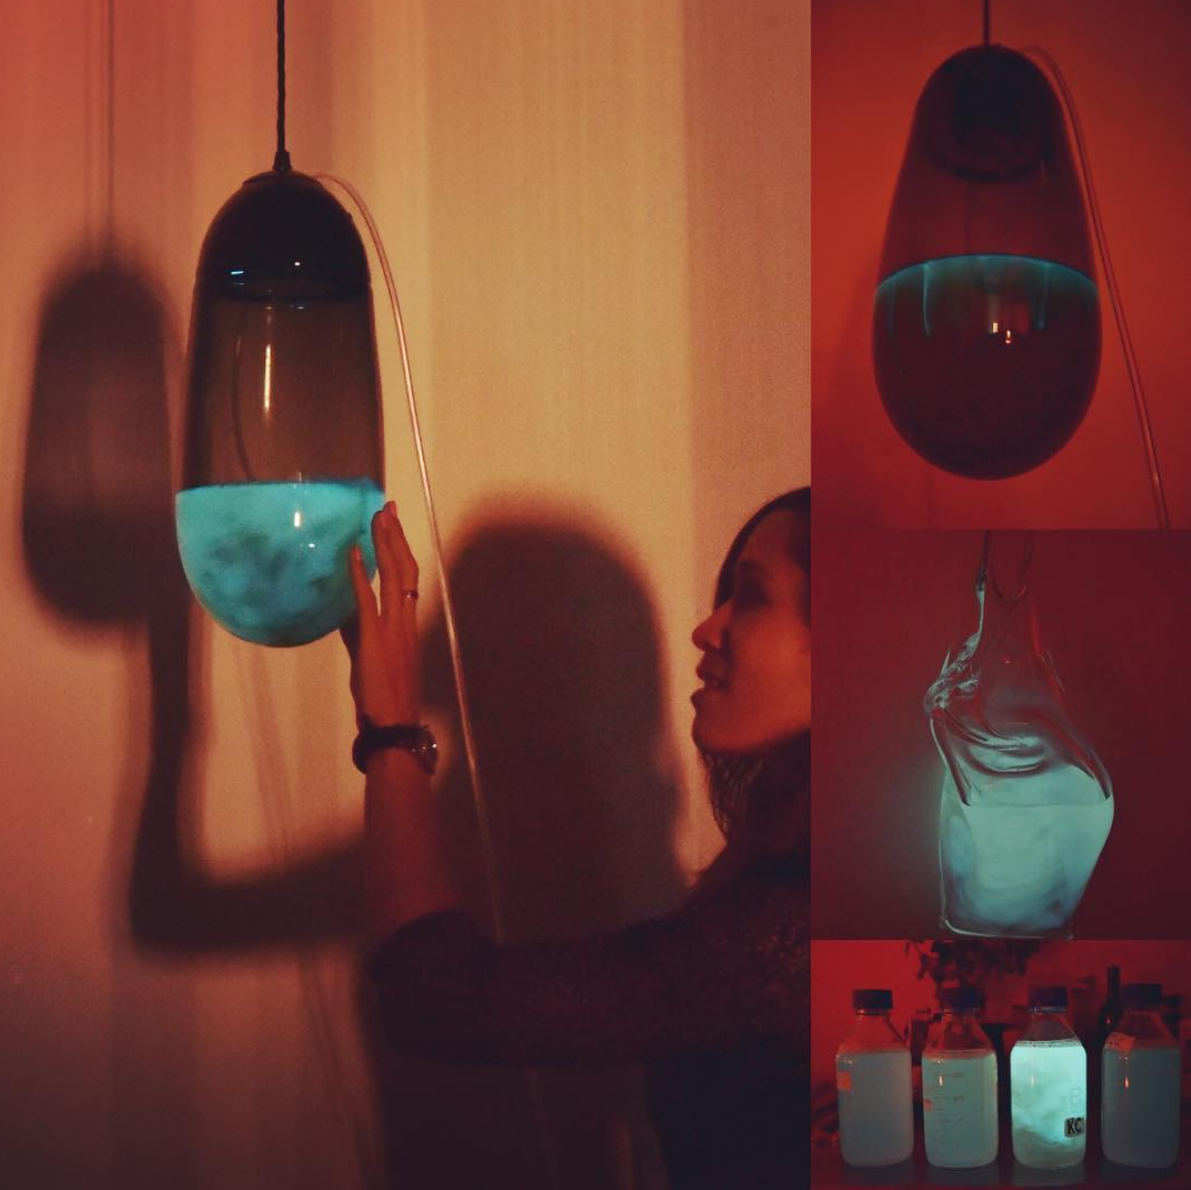 Our Bioluminescent Capsule light we designed, handcrafted by Isaac Katzoff and filled with the bacteria grown by Biologist Dr Siousxie Wiles.